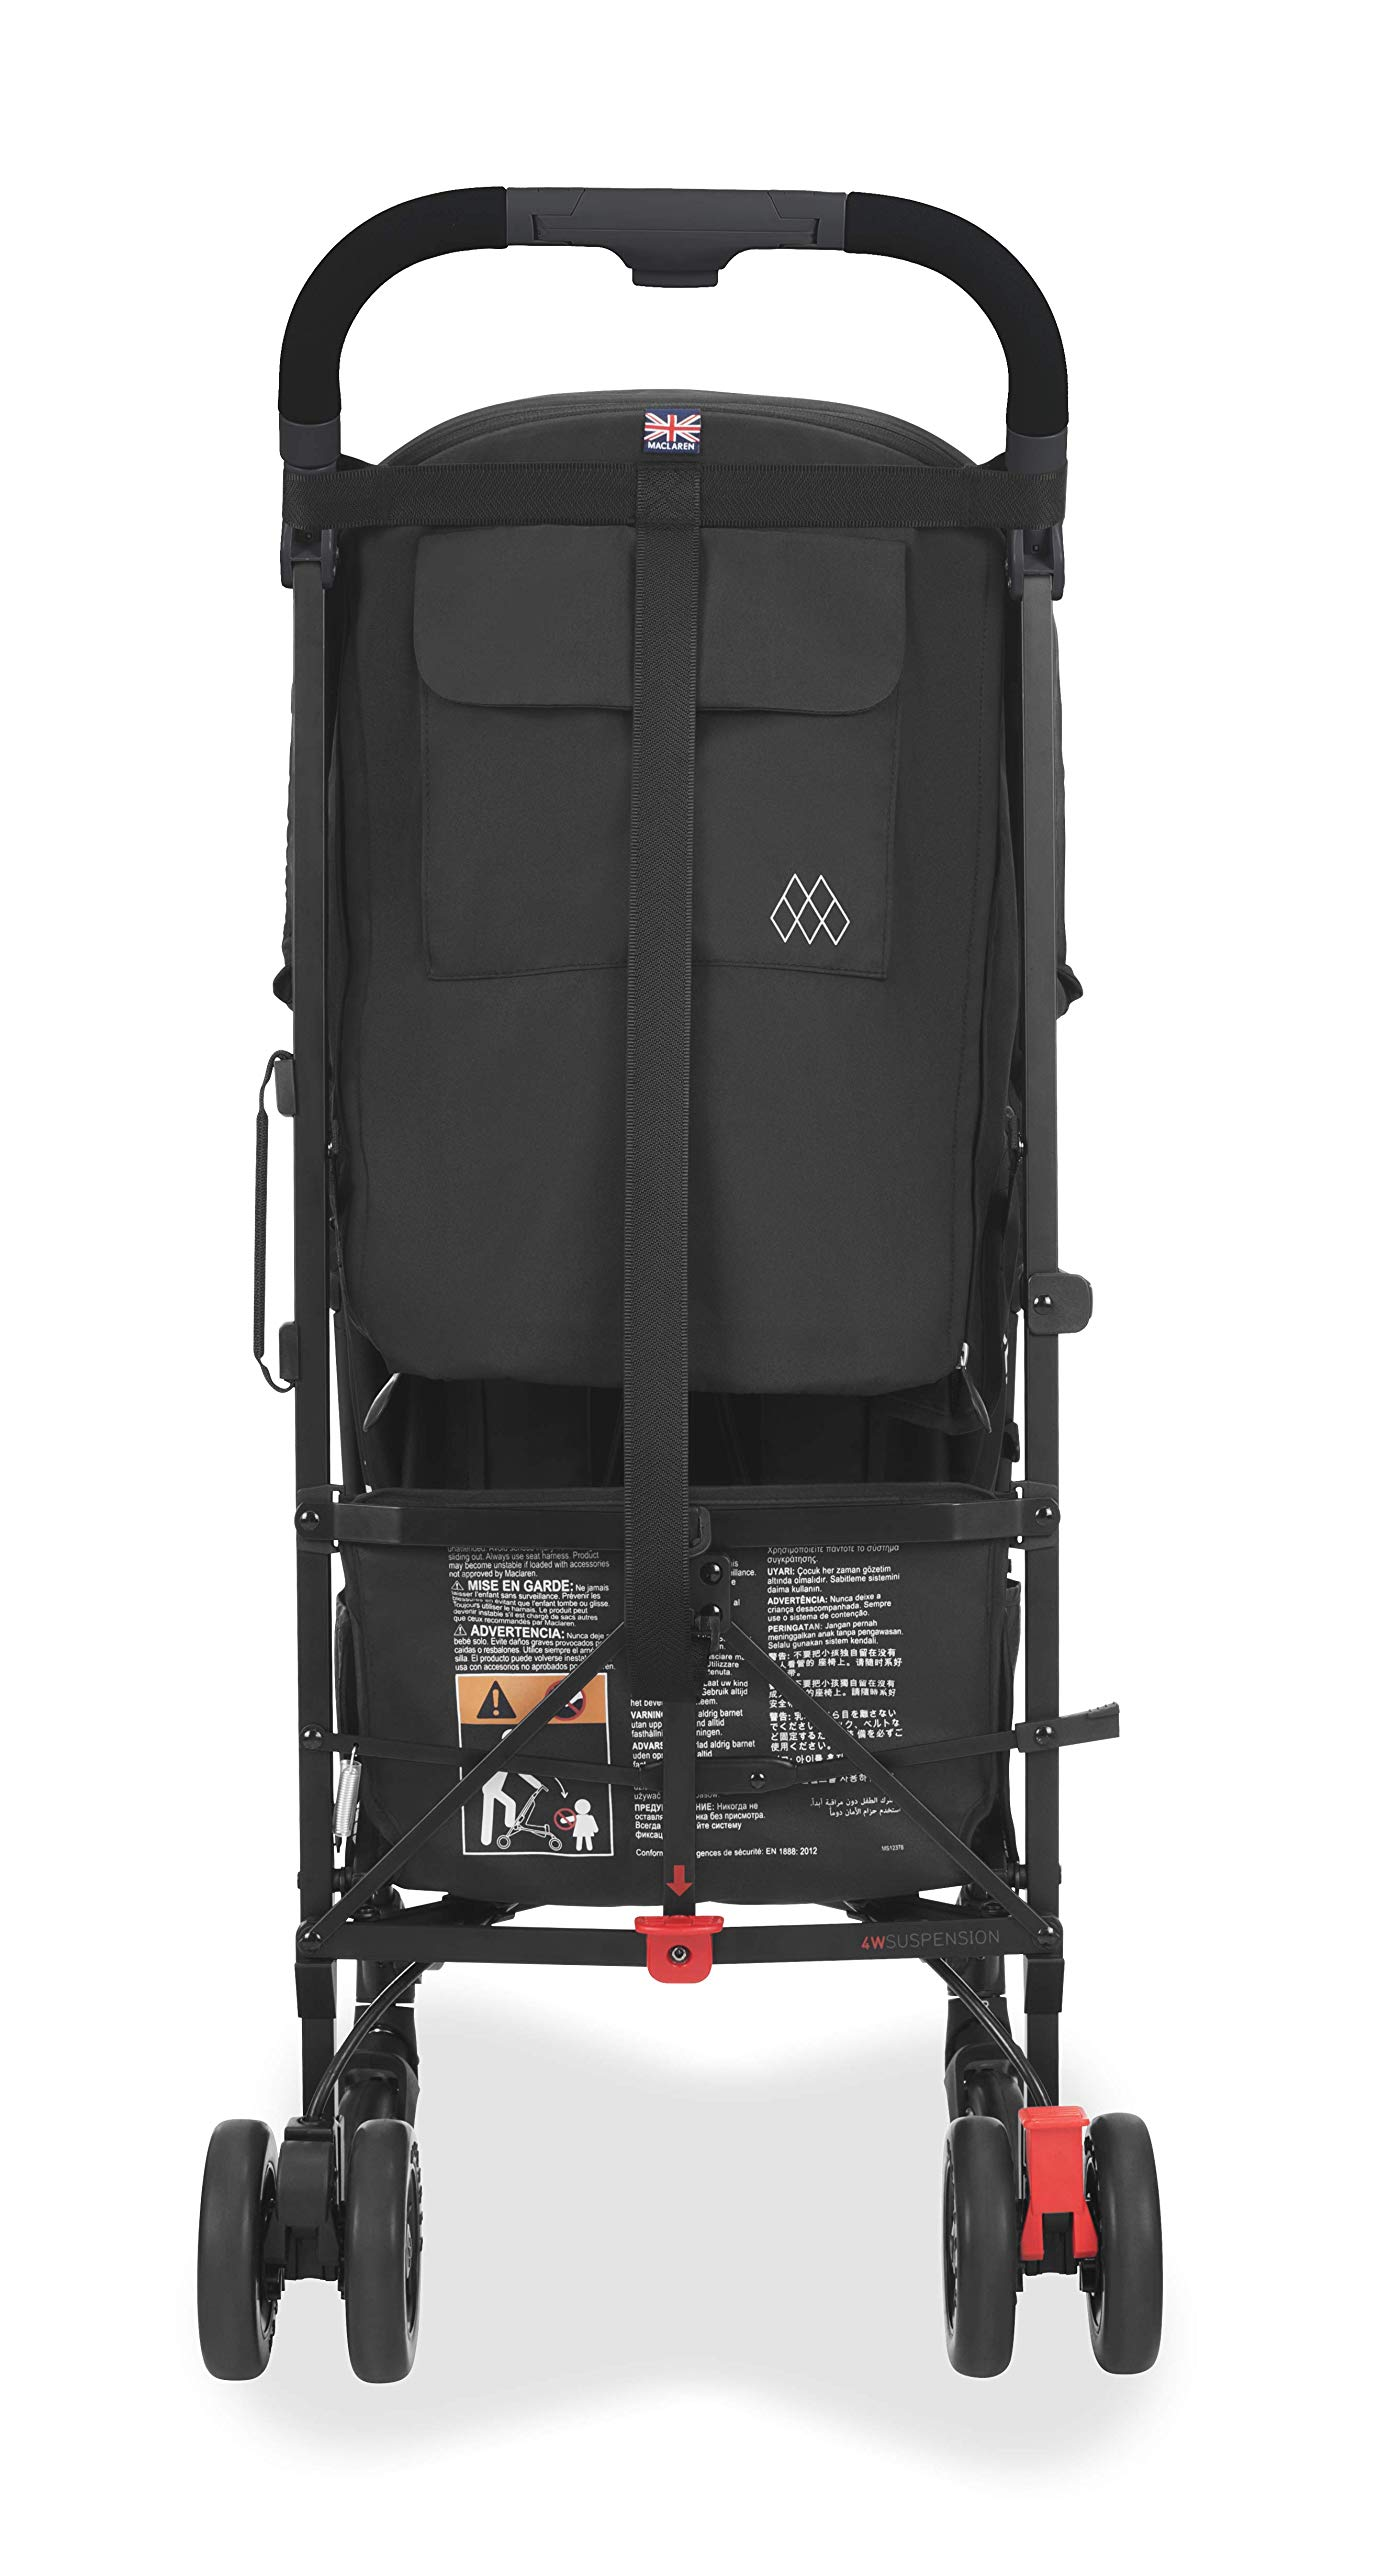 Maclaren Quest Arc Stroller- Ideal for Newborns up to 25kg with extendable UPF 50+/Waterproof Hood, Multi-Position seat and 4-Wheel Suspension. Maclaren Carrycot Compatible. Accessories in The Box Maclaren Lightweight and compact. ideal for newborns and children up to 25kg. you can do it all with one-hand- open, close, push and adjust the seat, footrest and front safety lock Comfy and perfect for travel. the quest arc's padded seat reclines into 4 positions and converts into a new-born safety system. coupled with ultra light flat-free eva tires and all wheel suspension Smart product for active parents. compatible with the maclaren carrycot. all maclaren strollers have waterproof/ upf 50+ hoods to protect from the elements and machine washable seats to keep tidy 4